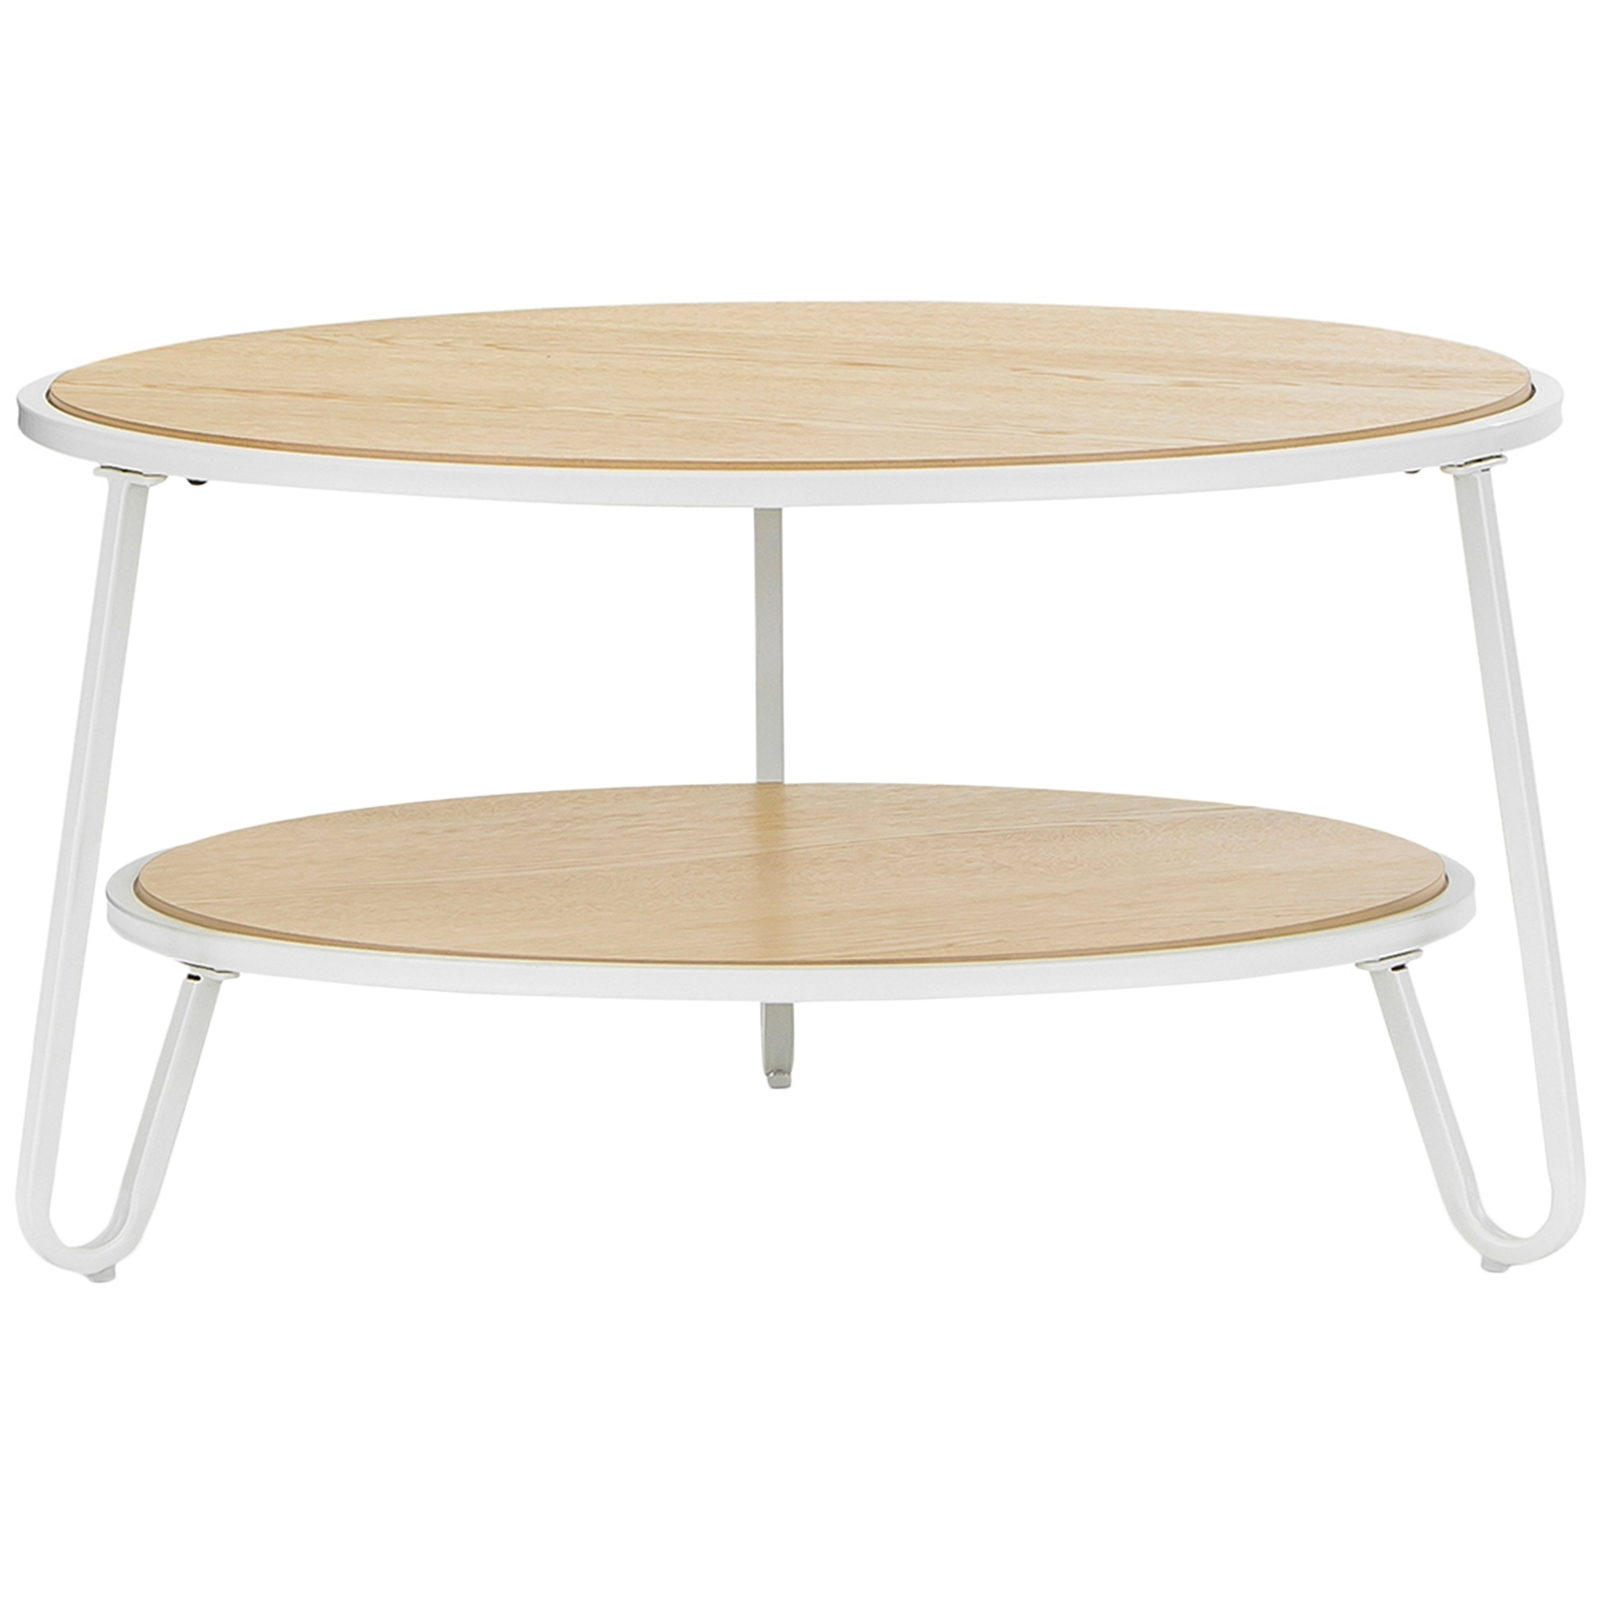 White Macy Round Coffee Table | Temple & Webster In Most Current Macie Round Dining Tables (Image 20 of 20)